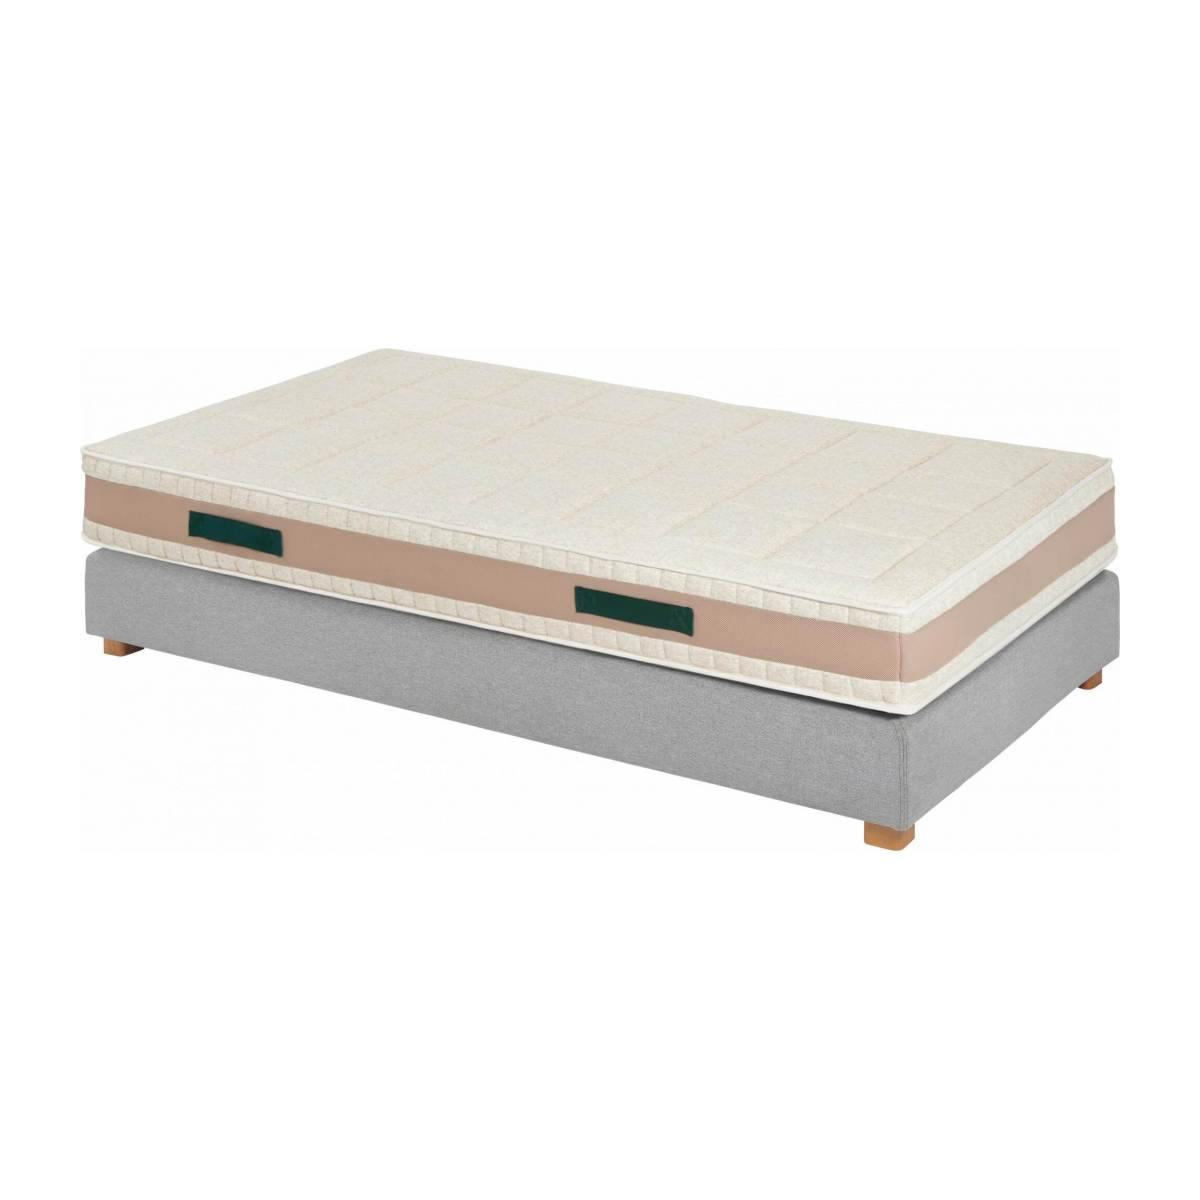 Latex mattress , width 23 cm, 90x200cm - firm support n°5